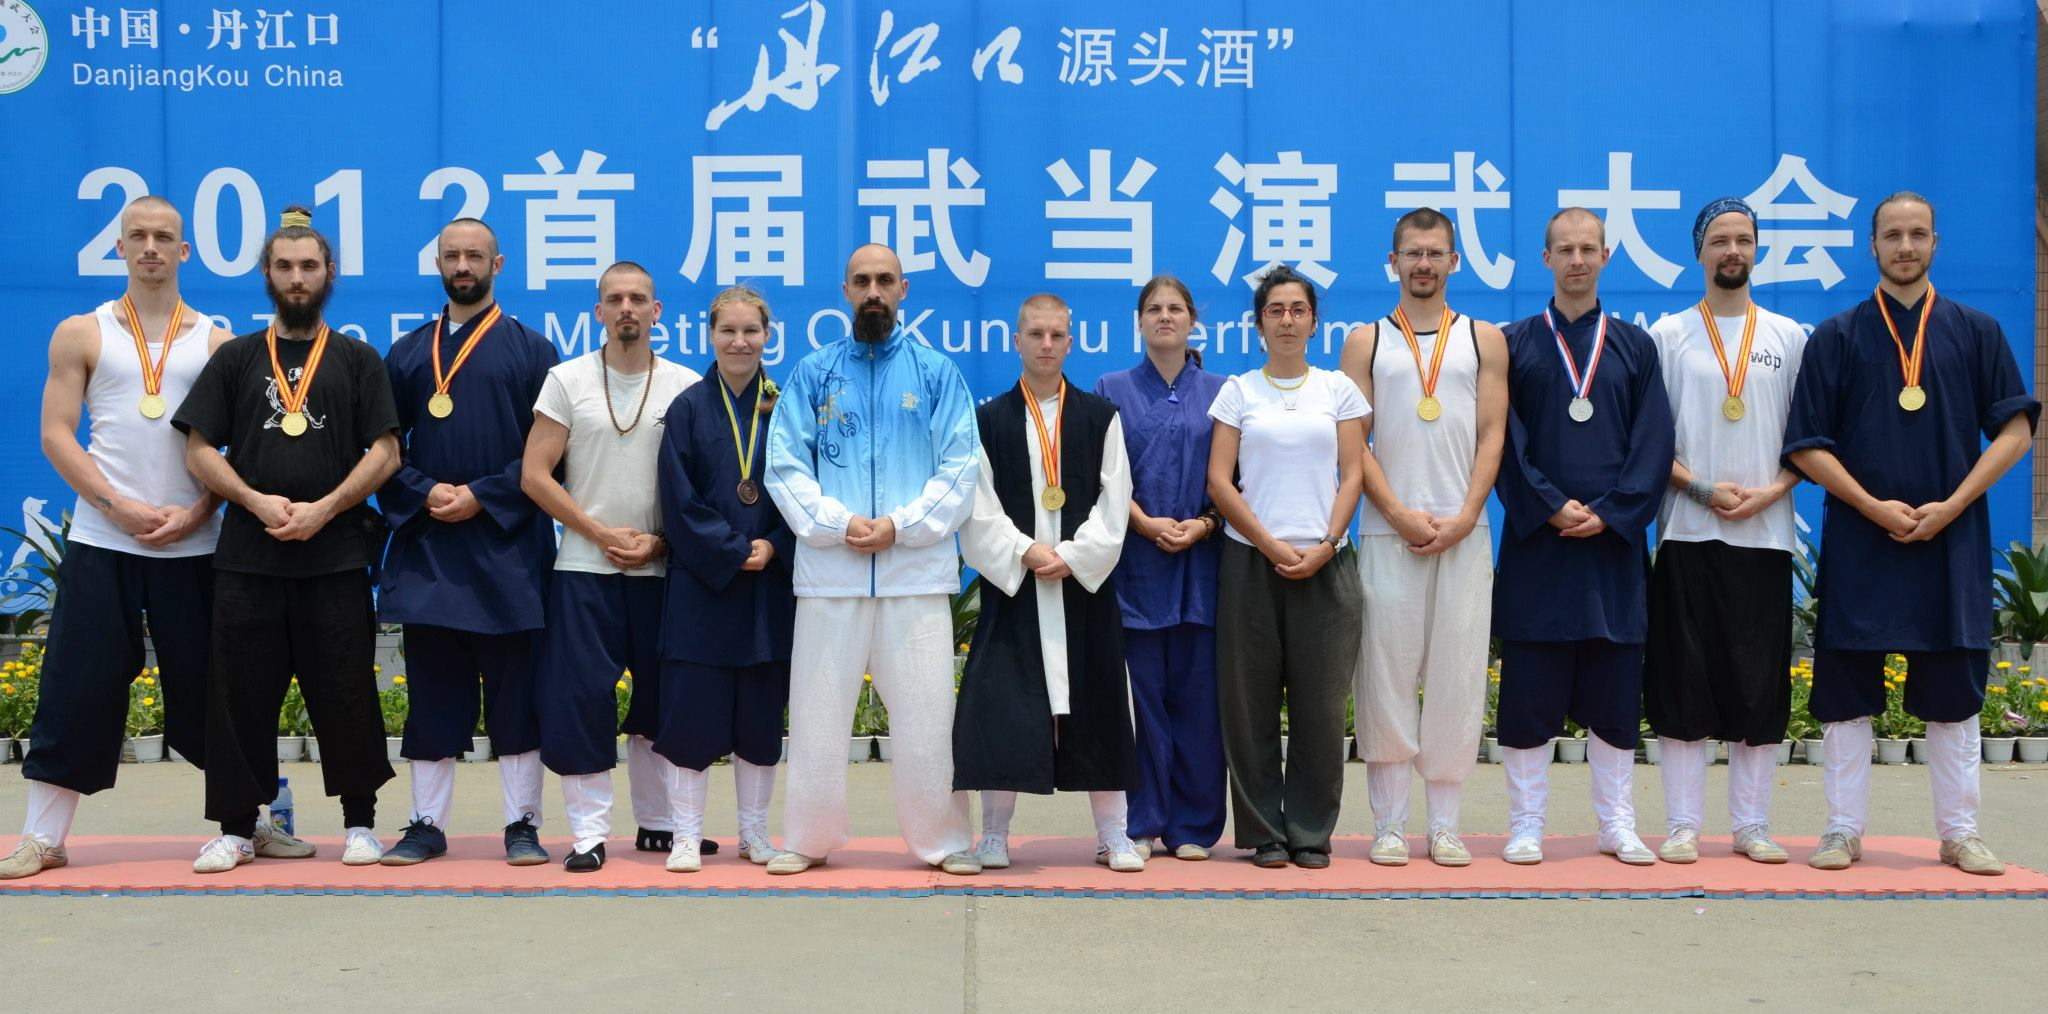 Championships at Mt. Wudang